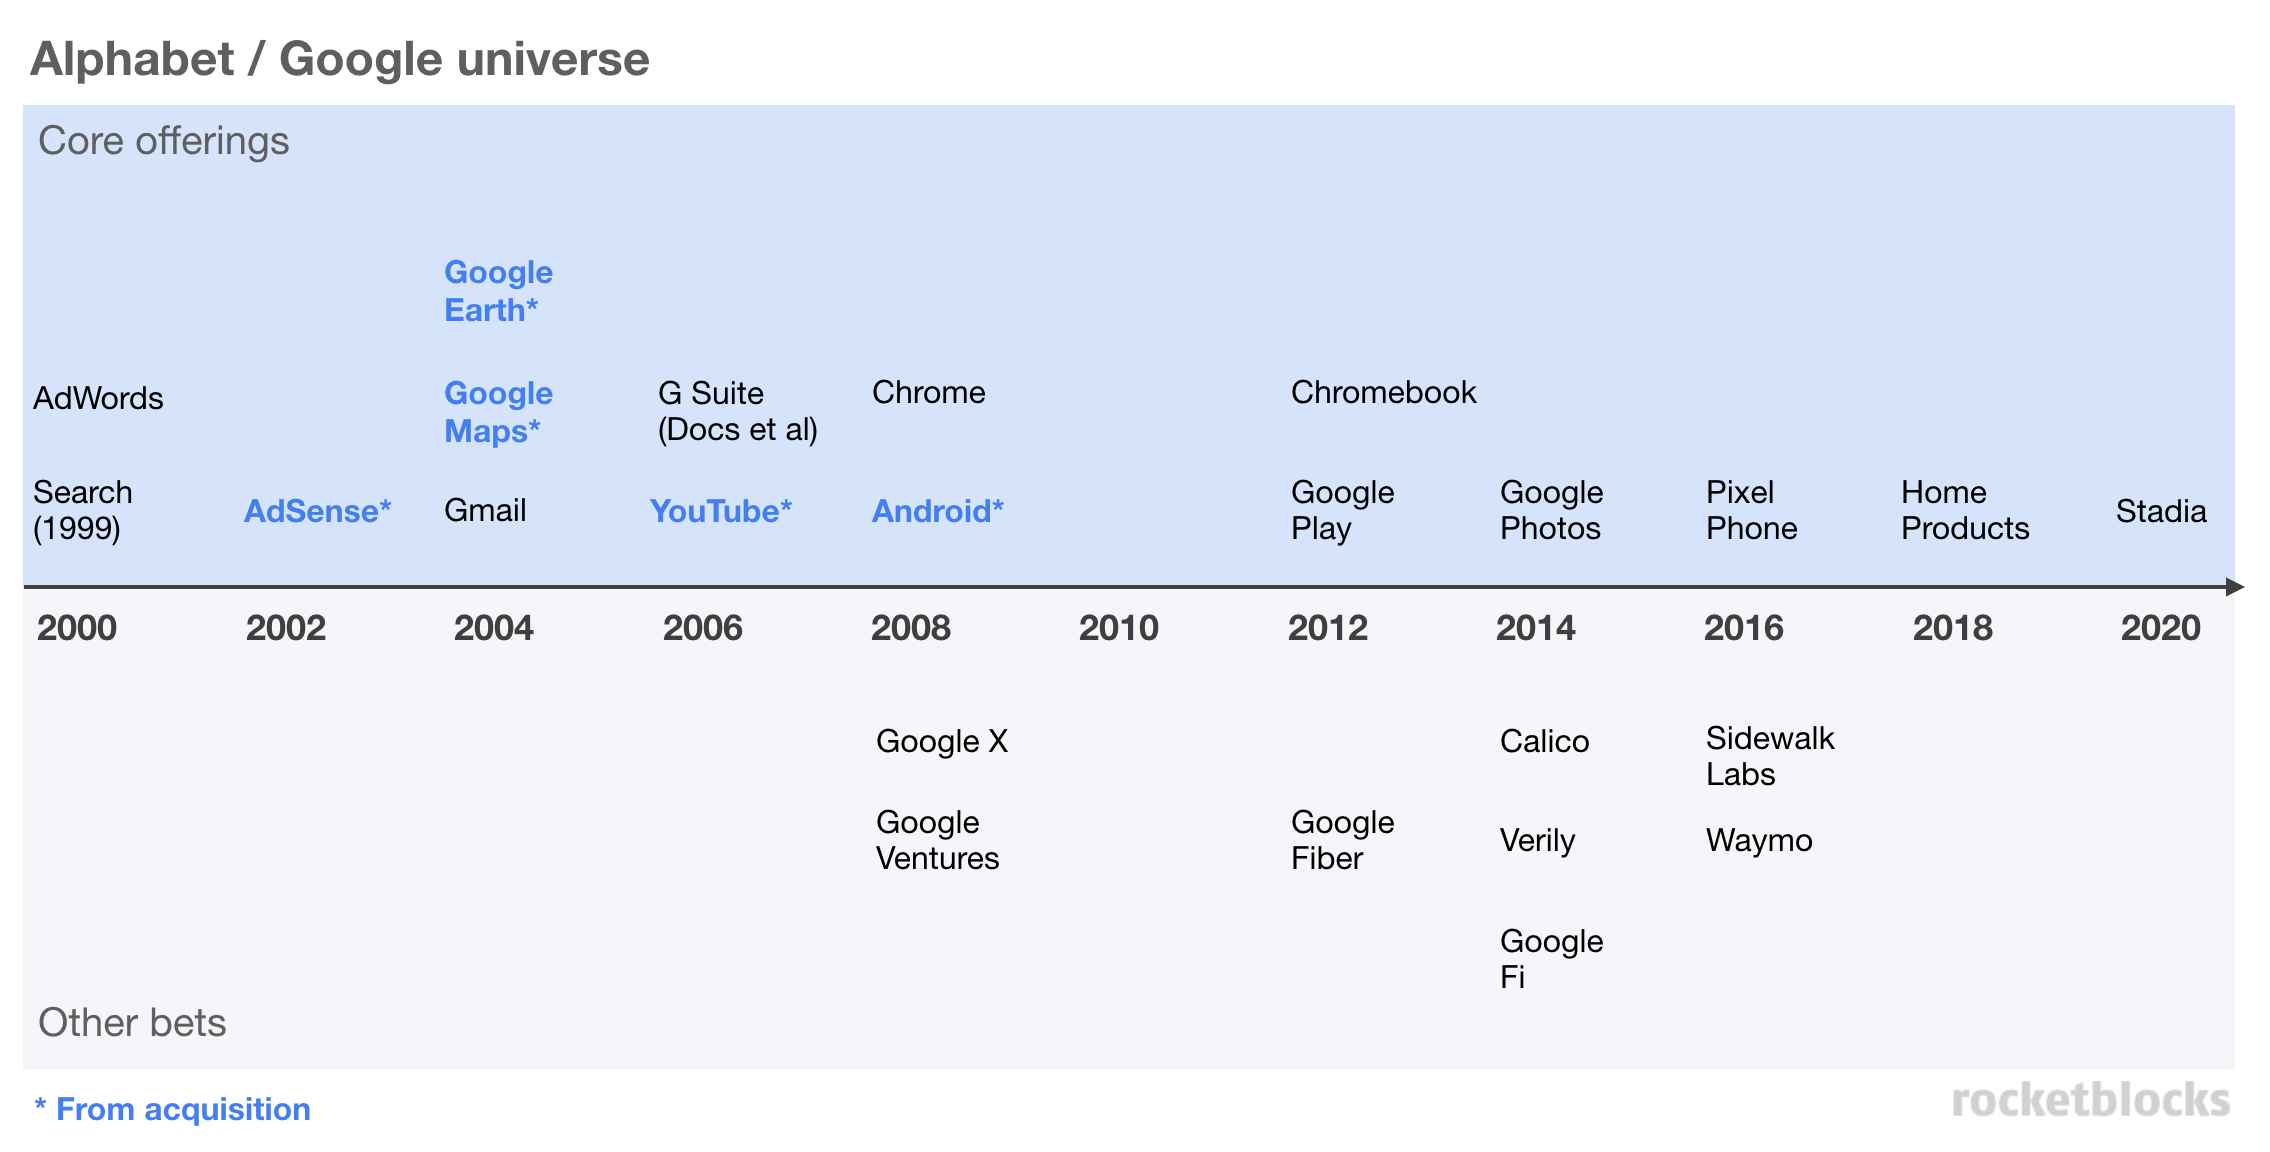 Timeline of all major Google product launches